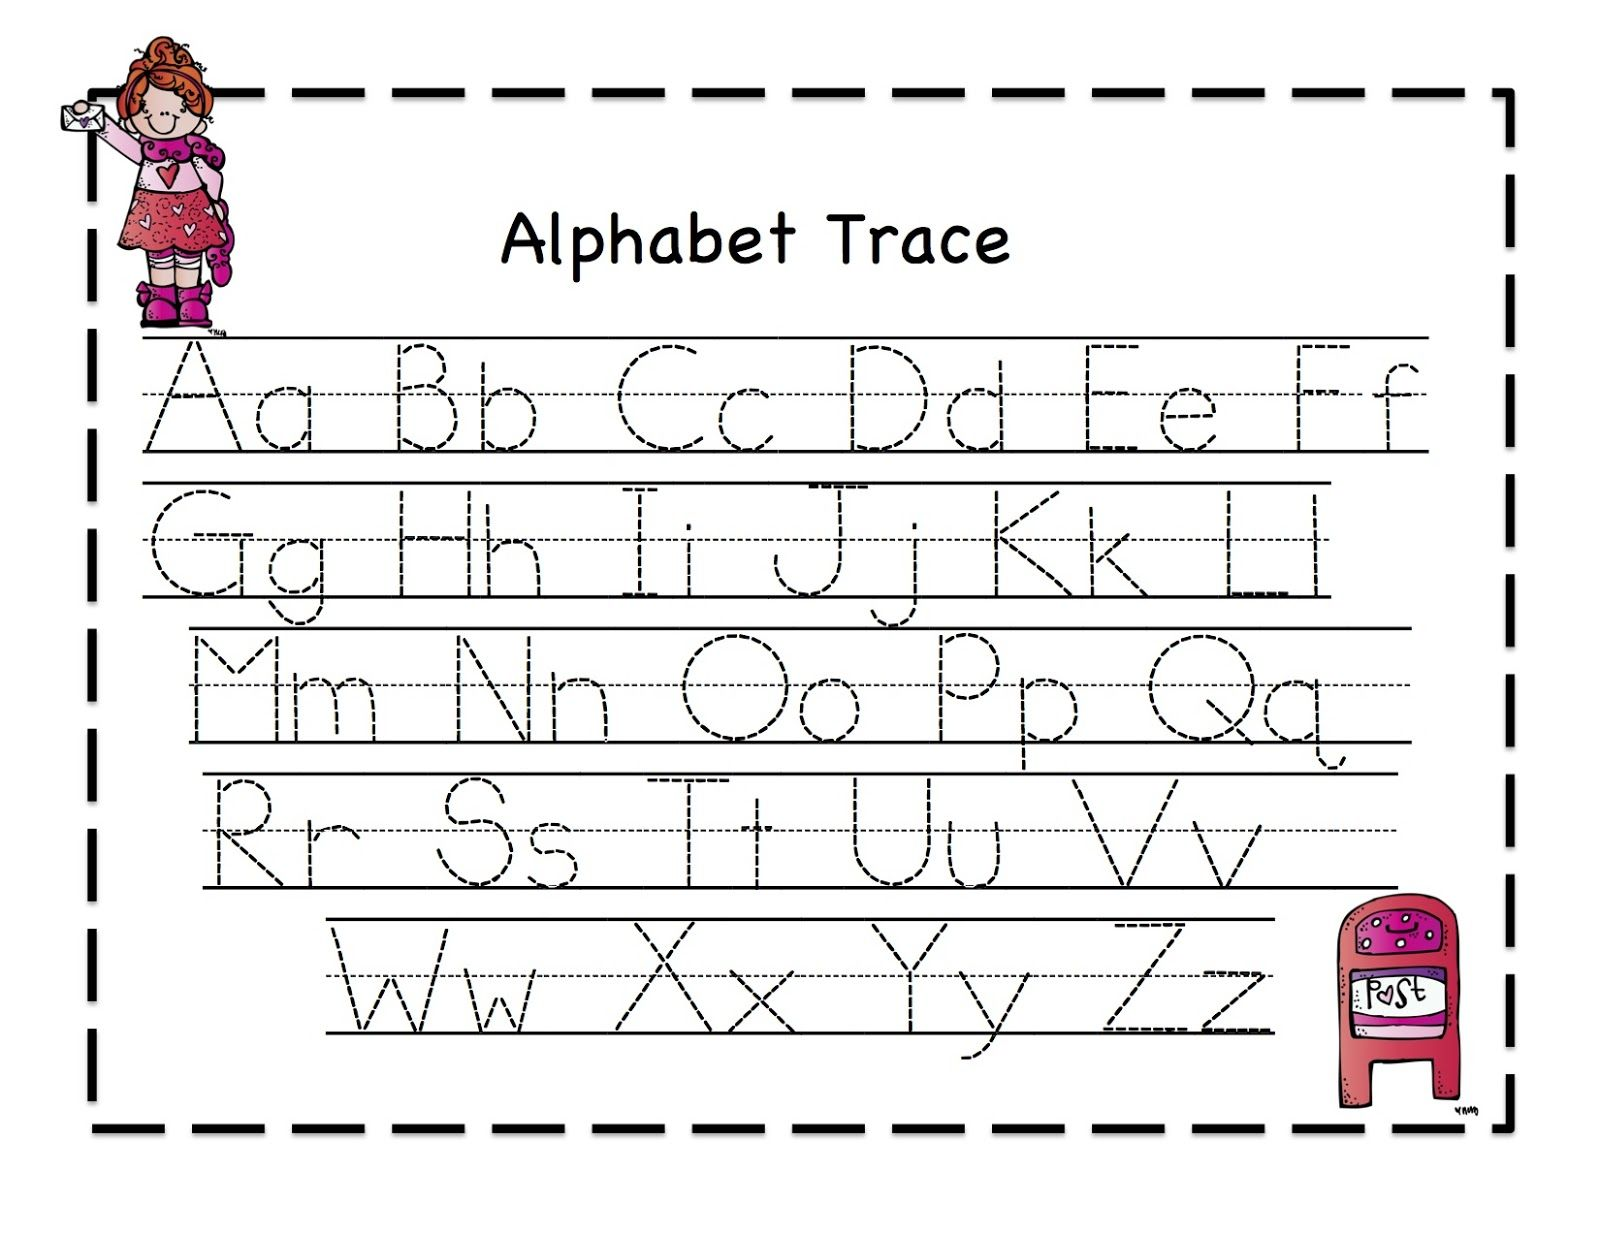 This Abc Tracing Sheets For Preschool Kids And Kindergarten Children Will Help You Kindergarten